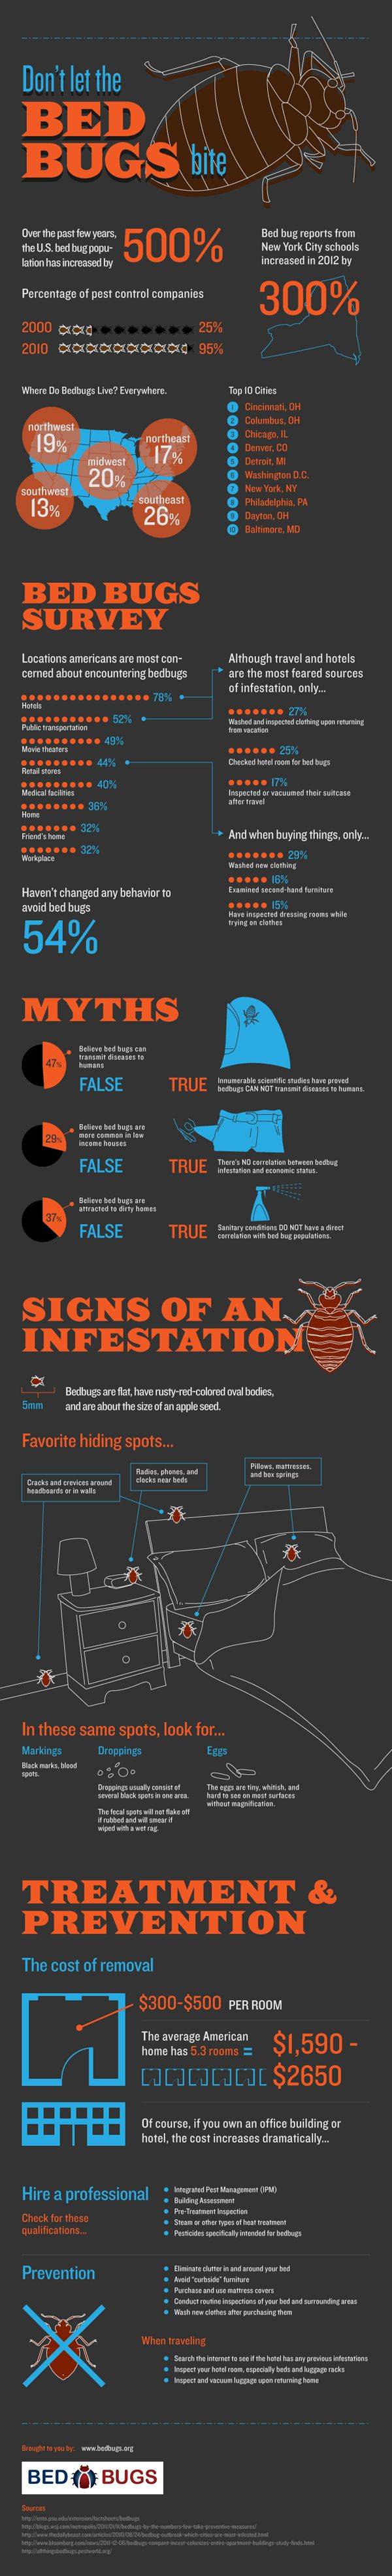 Don't Let the Bed Bugs Bite (With images) Bed bug bites